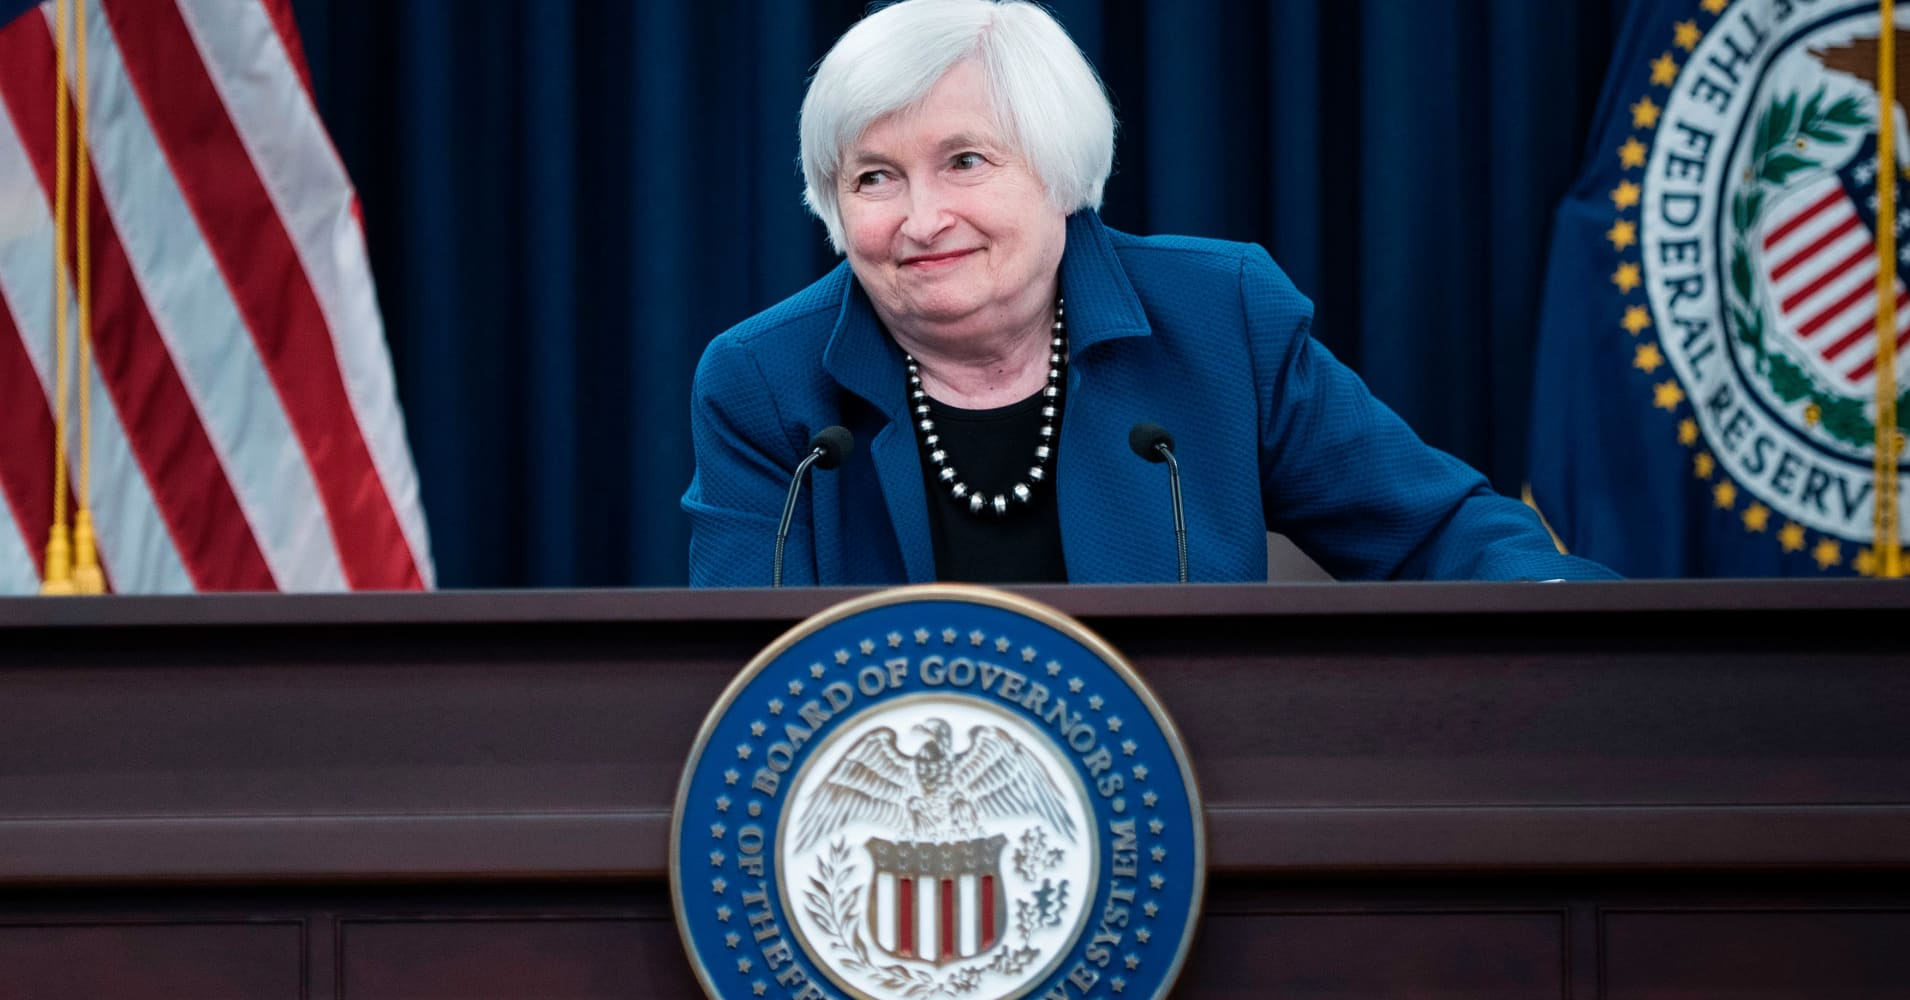 Fed says Yellen was hospitalized for a few days, returning to work this week